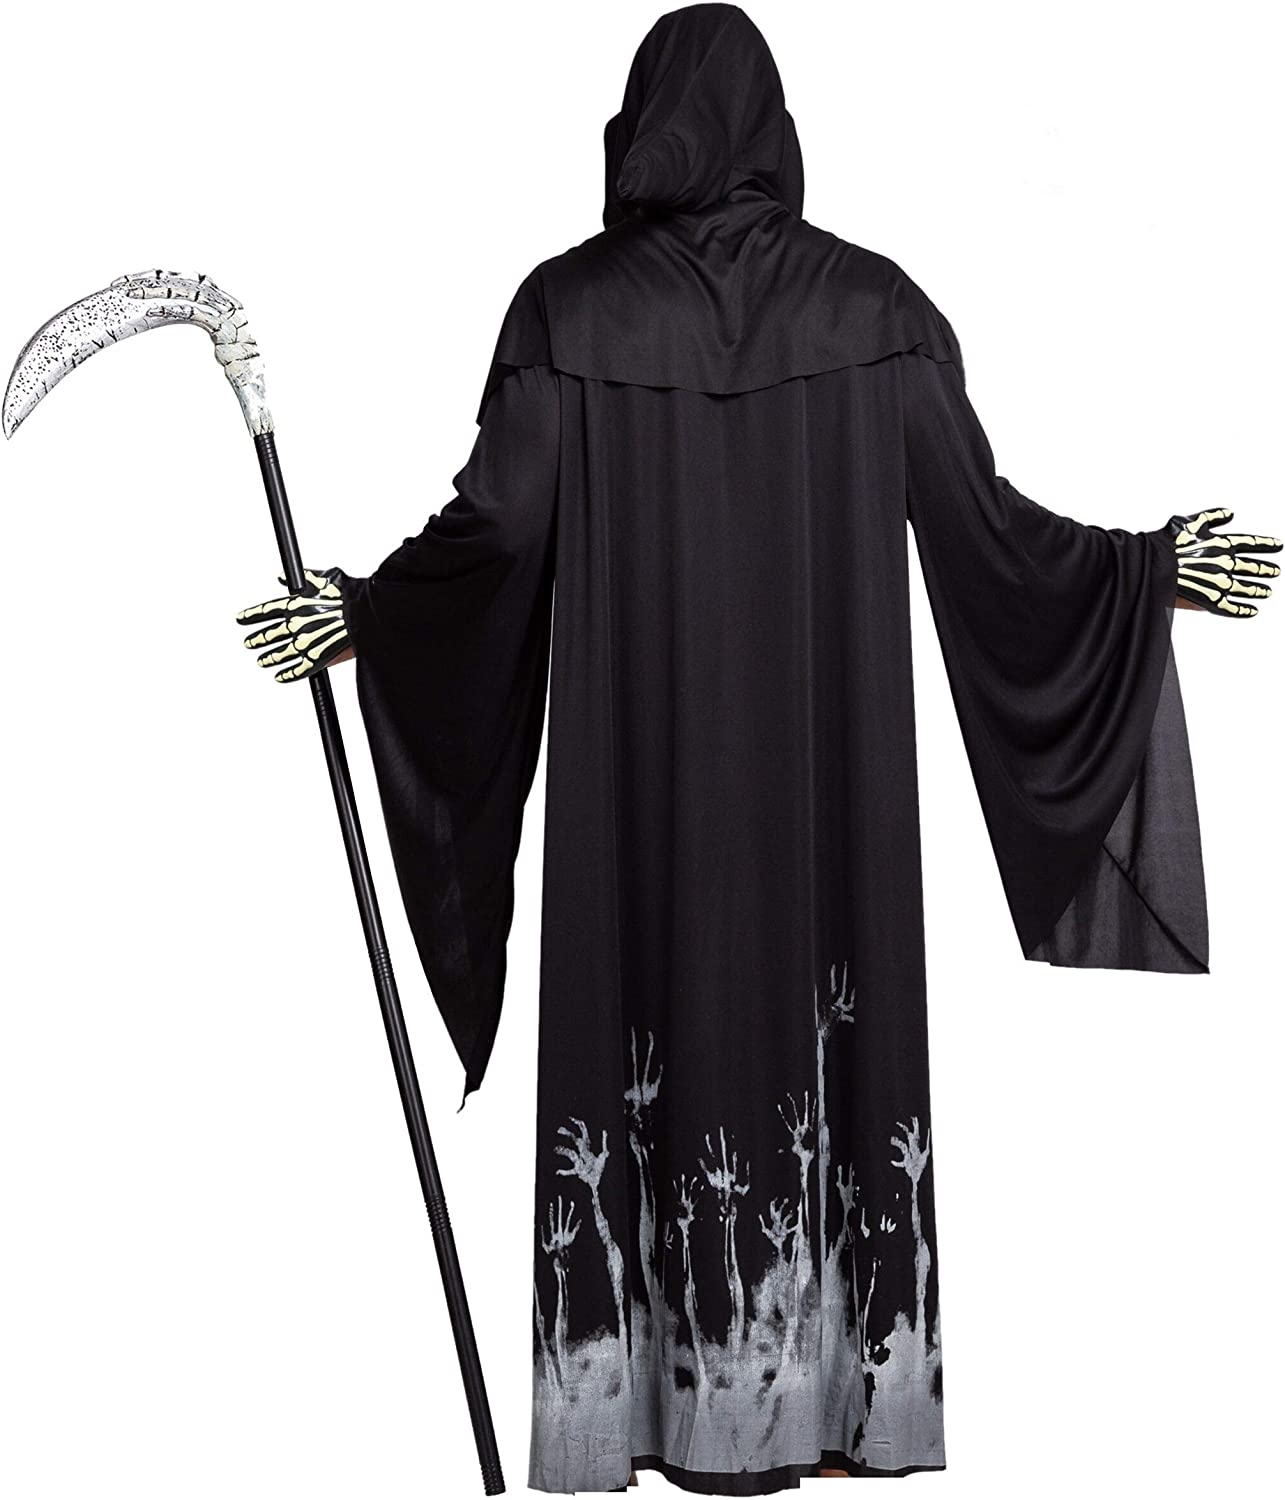 Spooktacular Creations Grim 55% OFF Max 84% OFF Reaper Cost Scary Skeleton Halloween